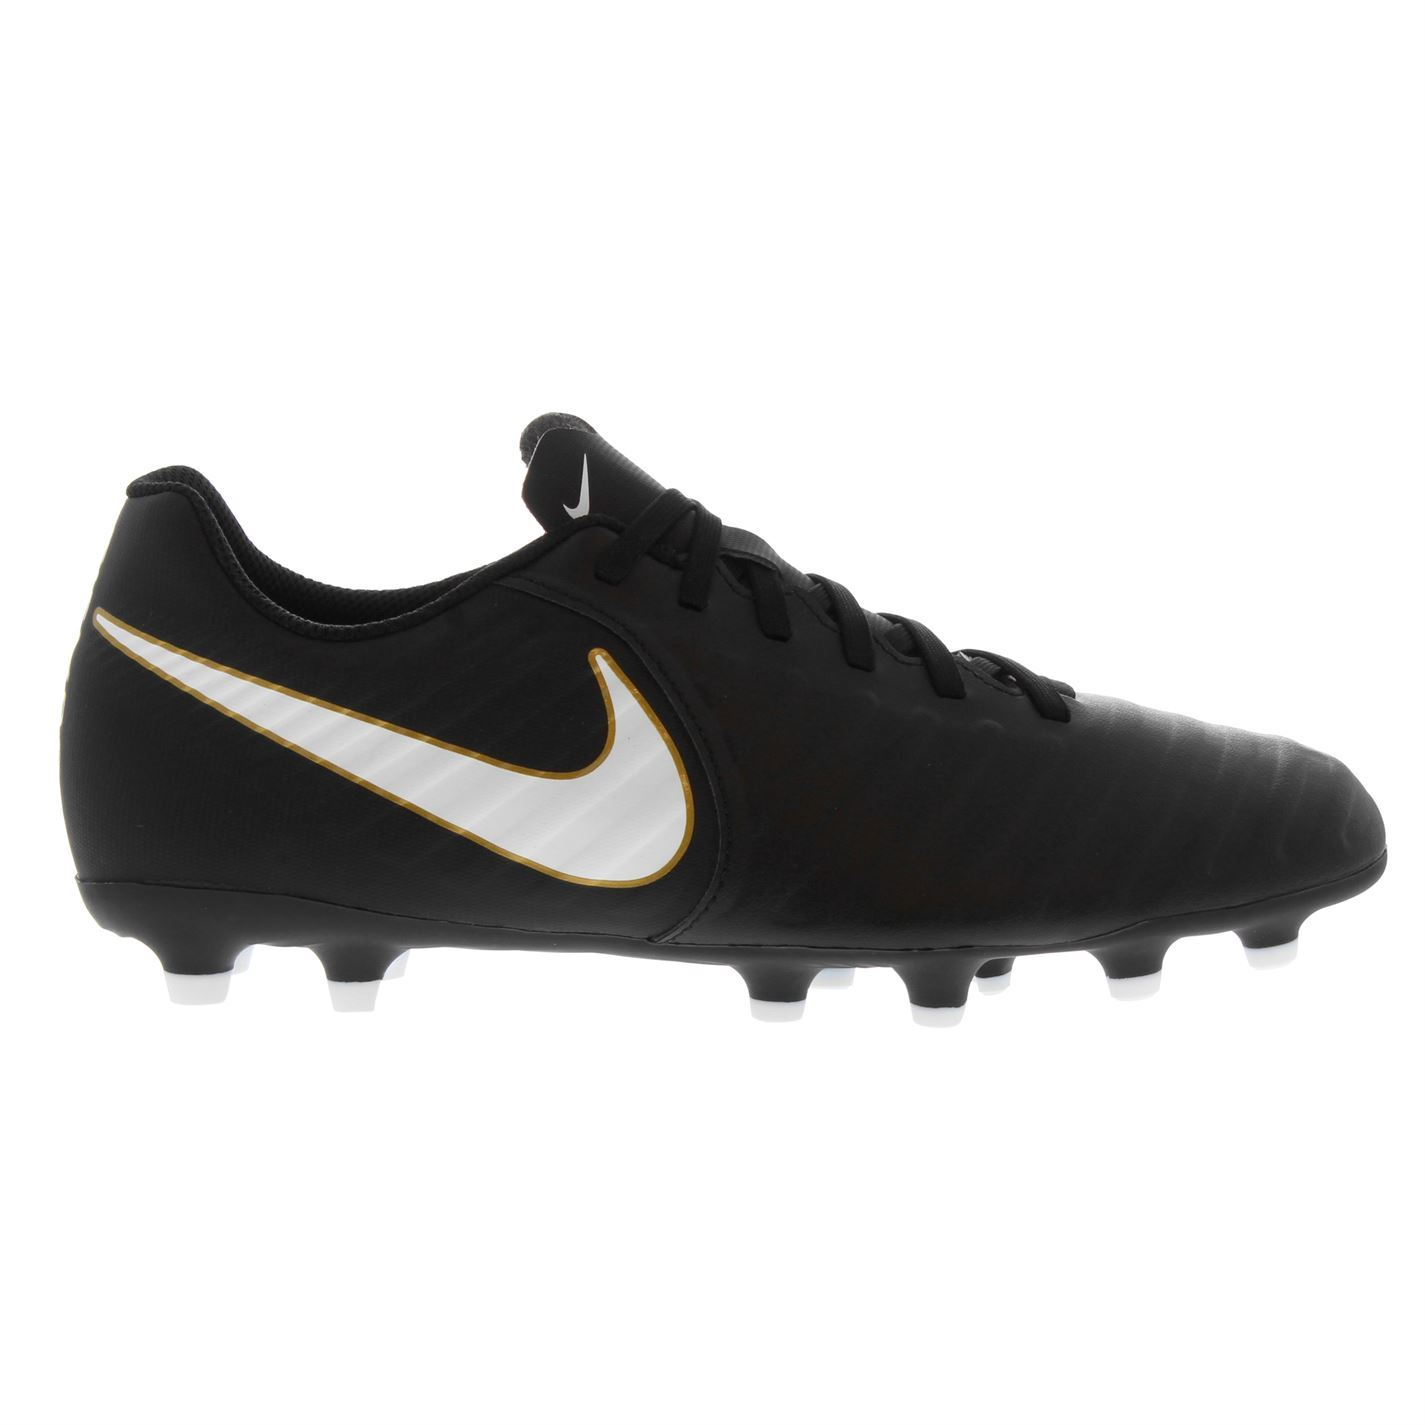 b092b871 ... Nike Tiempo Rio FG Firm Ground Football Boots Mens Black Soccer Shoes  Cleats ...